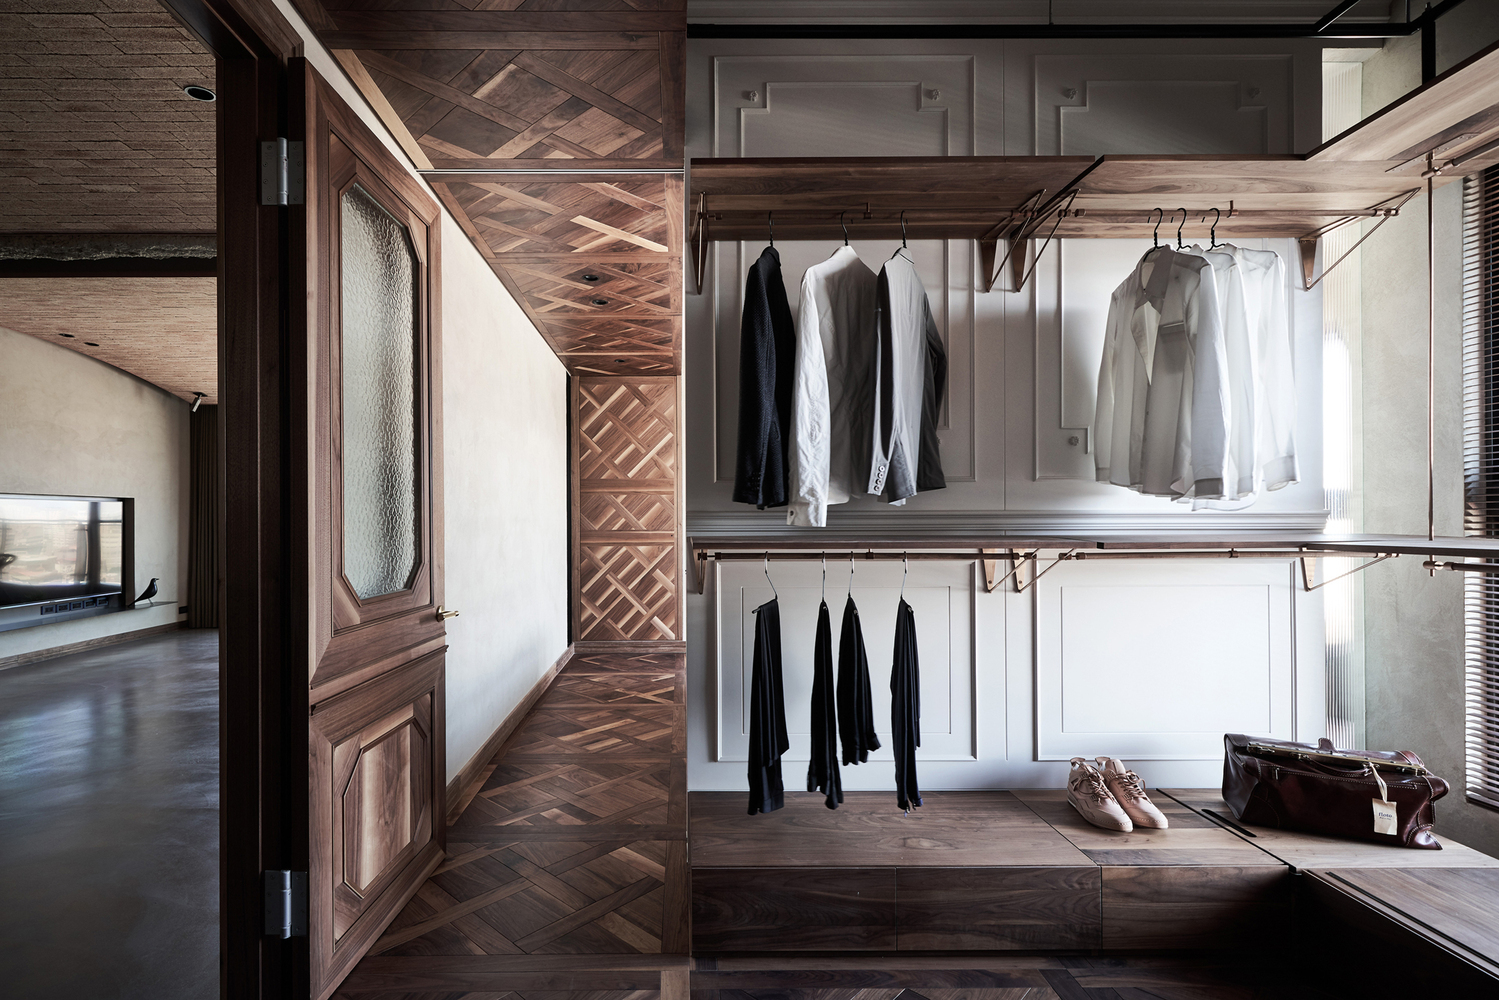 Space Saving Wardrobe Ideas Gallery Of Space Saving Solutions 33 Creative Storage Ideas 8